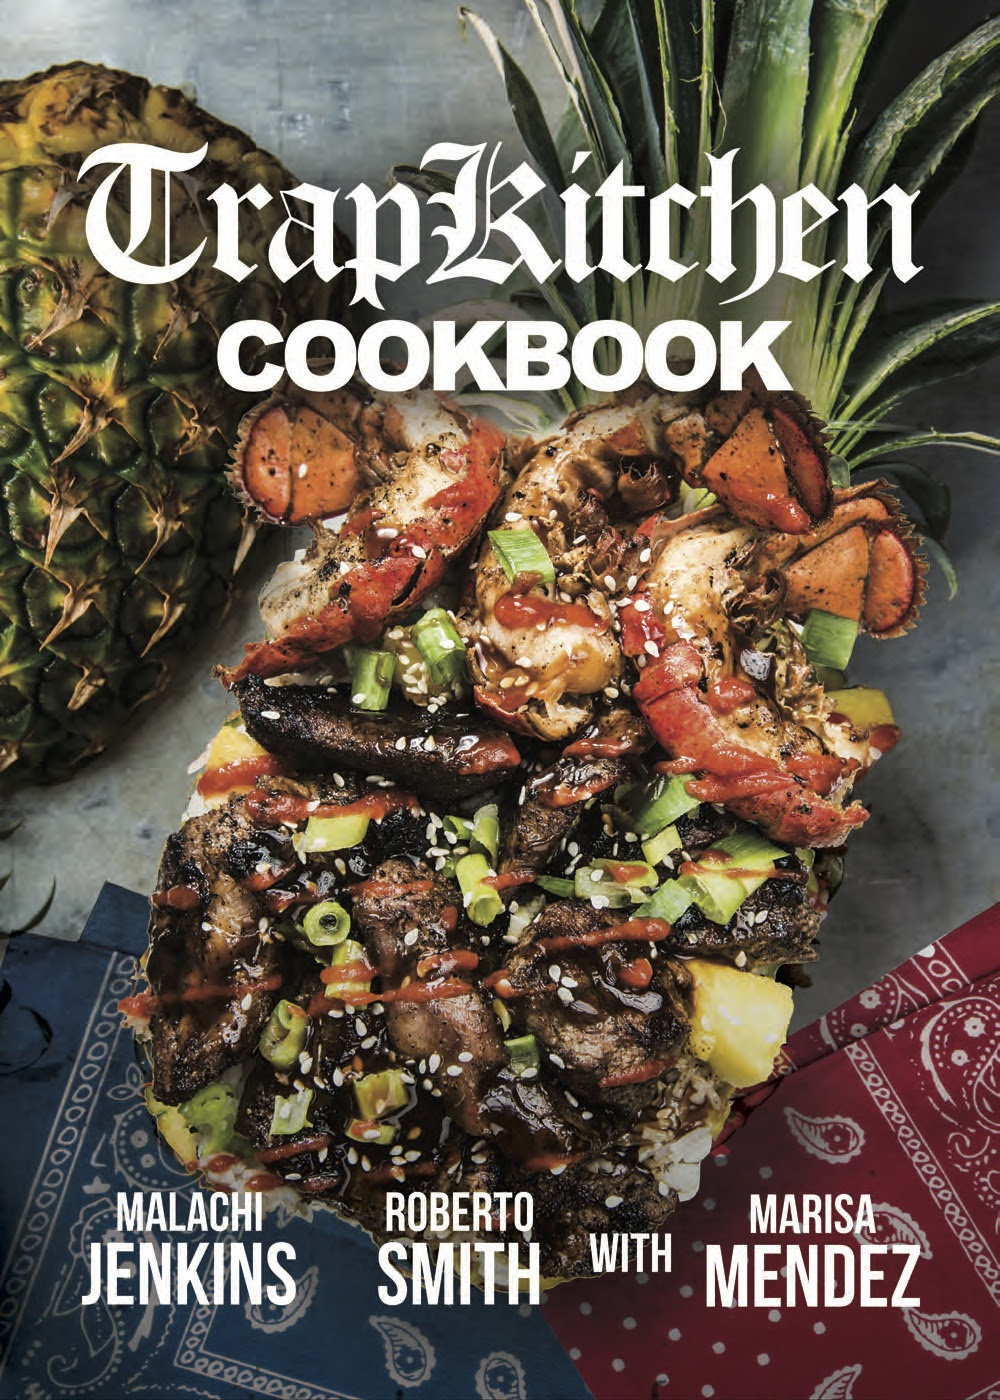 trapkitchenla two compton guys with a passion for food trap kitchen the cookbook out now - Trap Kitchen